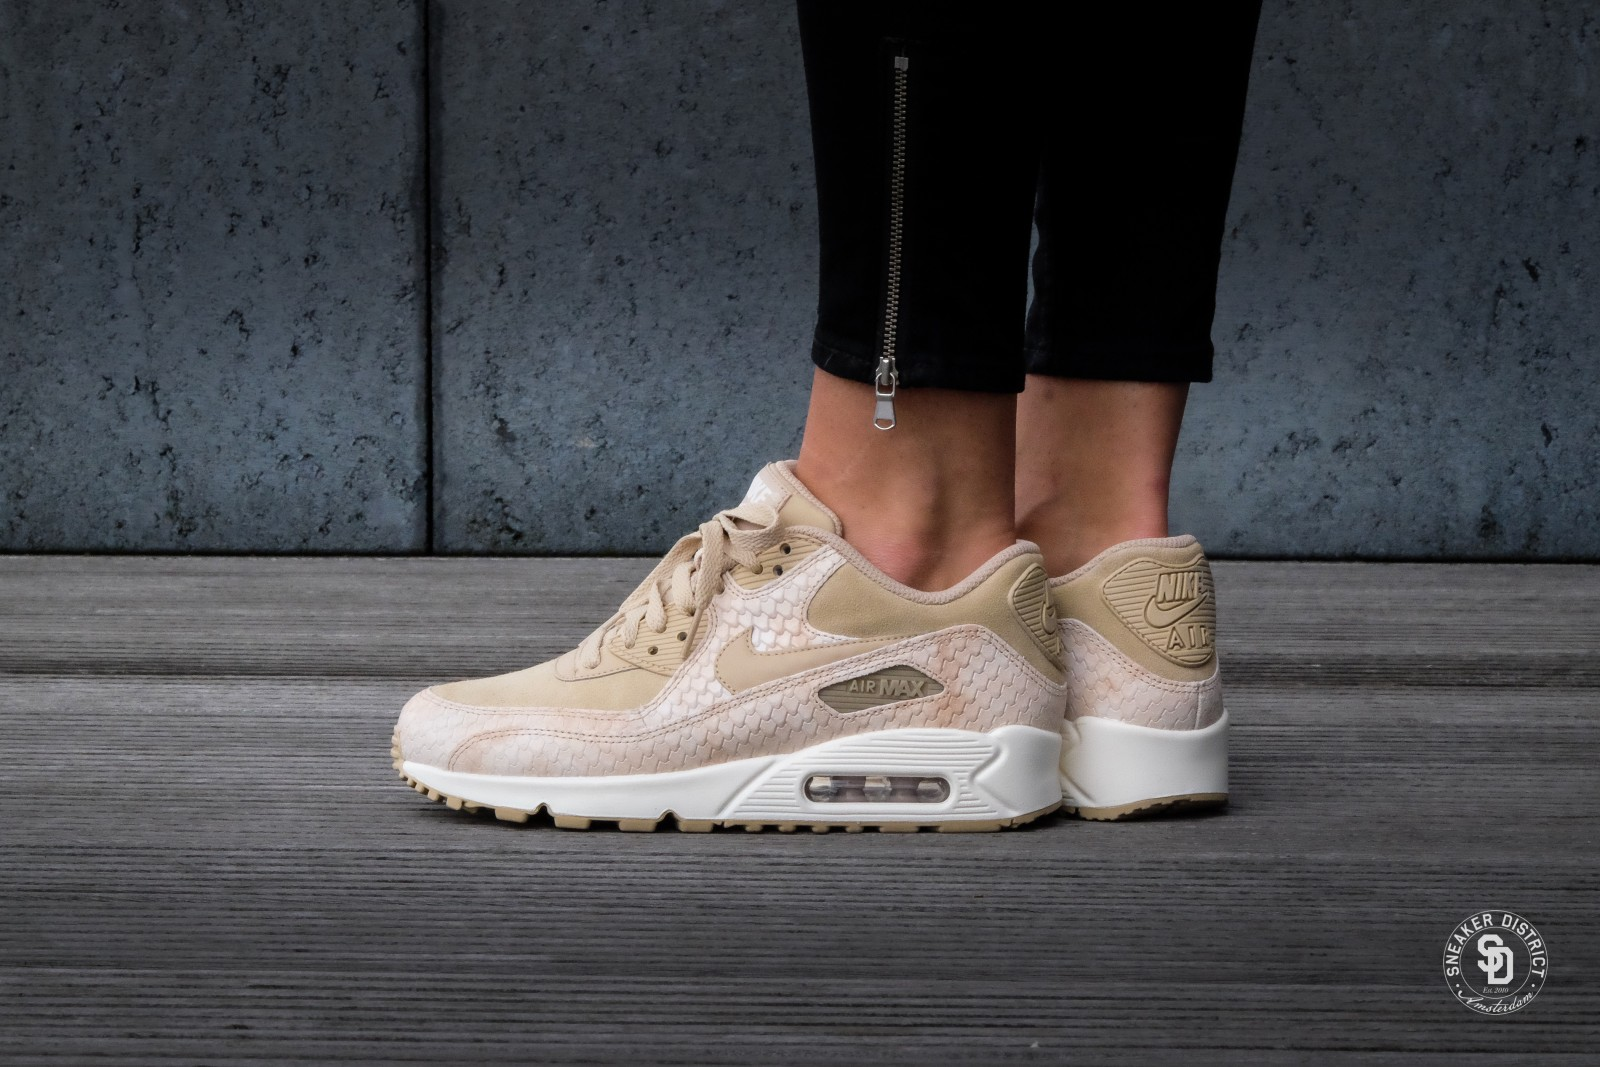 Nike Wmns Air Max 90 PRM Sneaker for Women